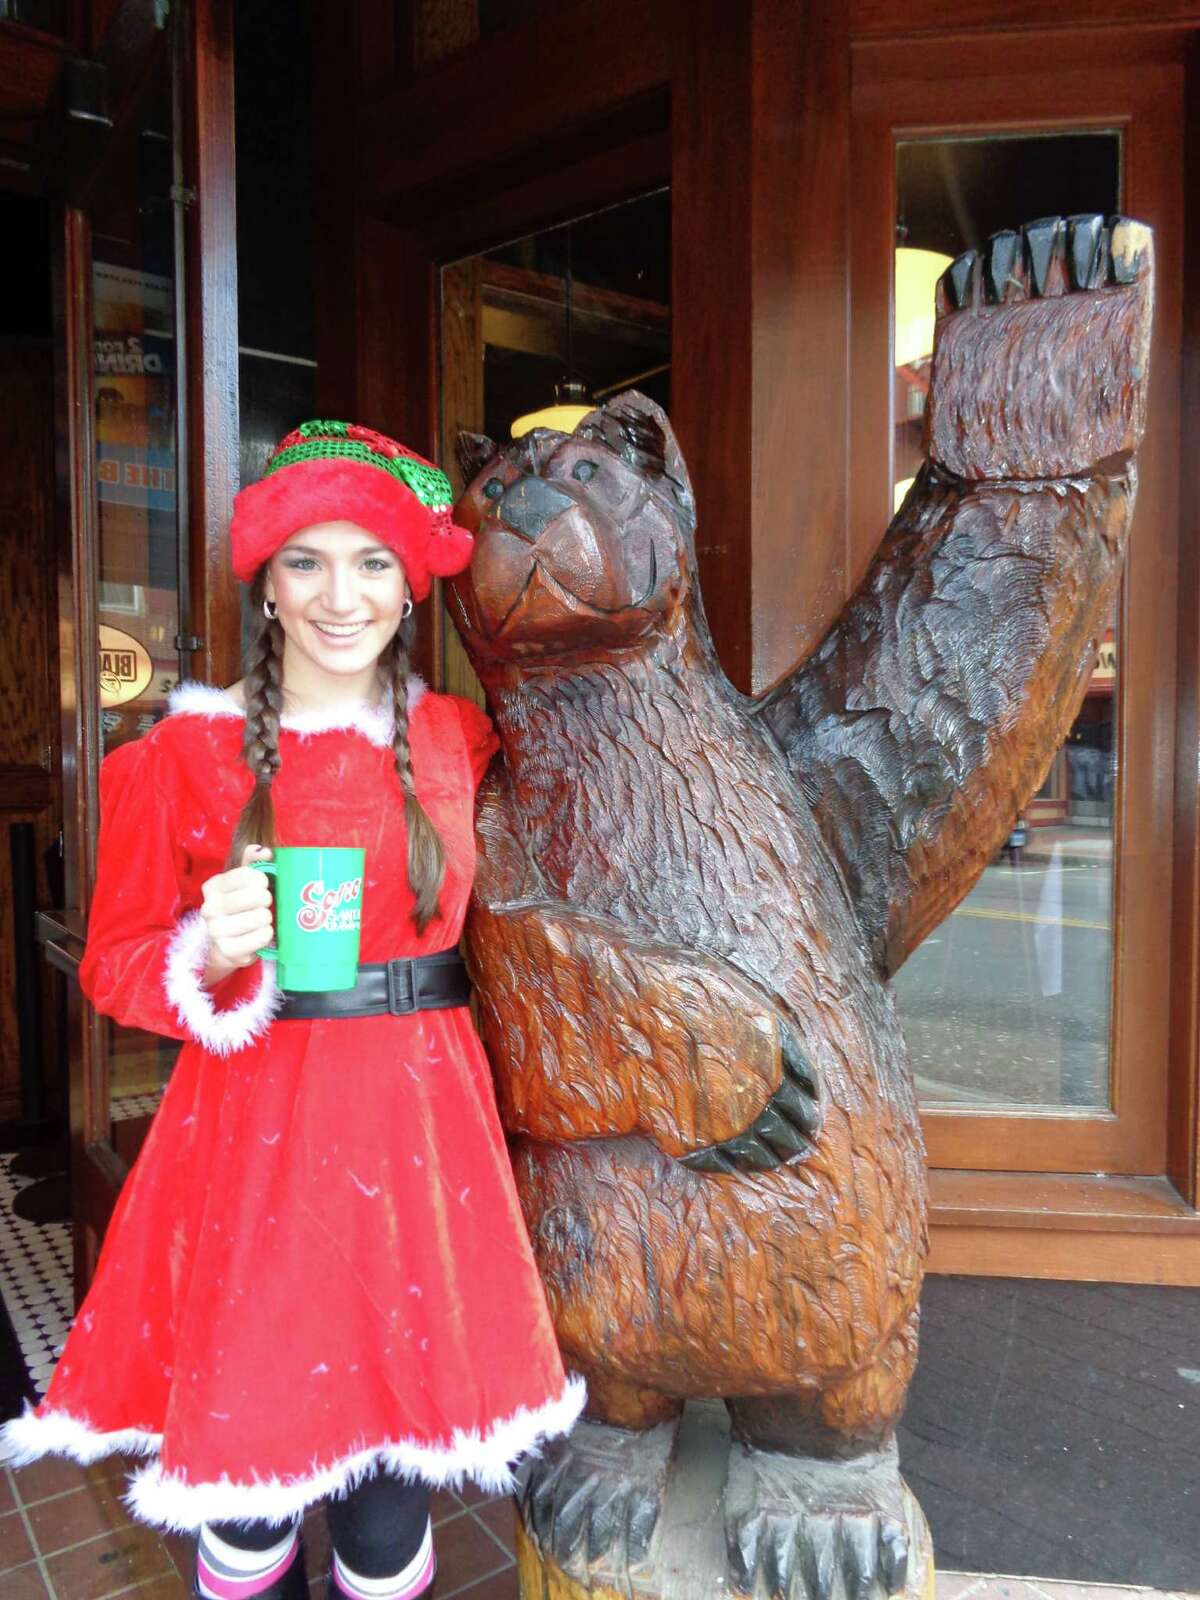 Kimberly Woodruff, a student at Sacred Heart University, poses with the carved wood bear statue in front of the Black Bear Saloon in SoNo as she arrives for the first-ever Santa Crawl on Saturday.